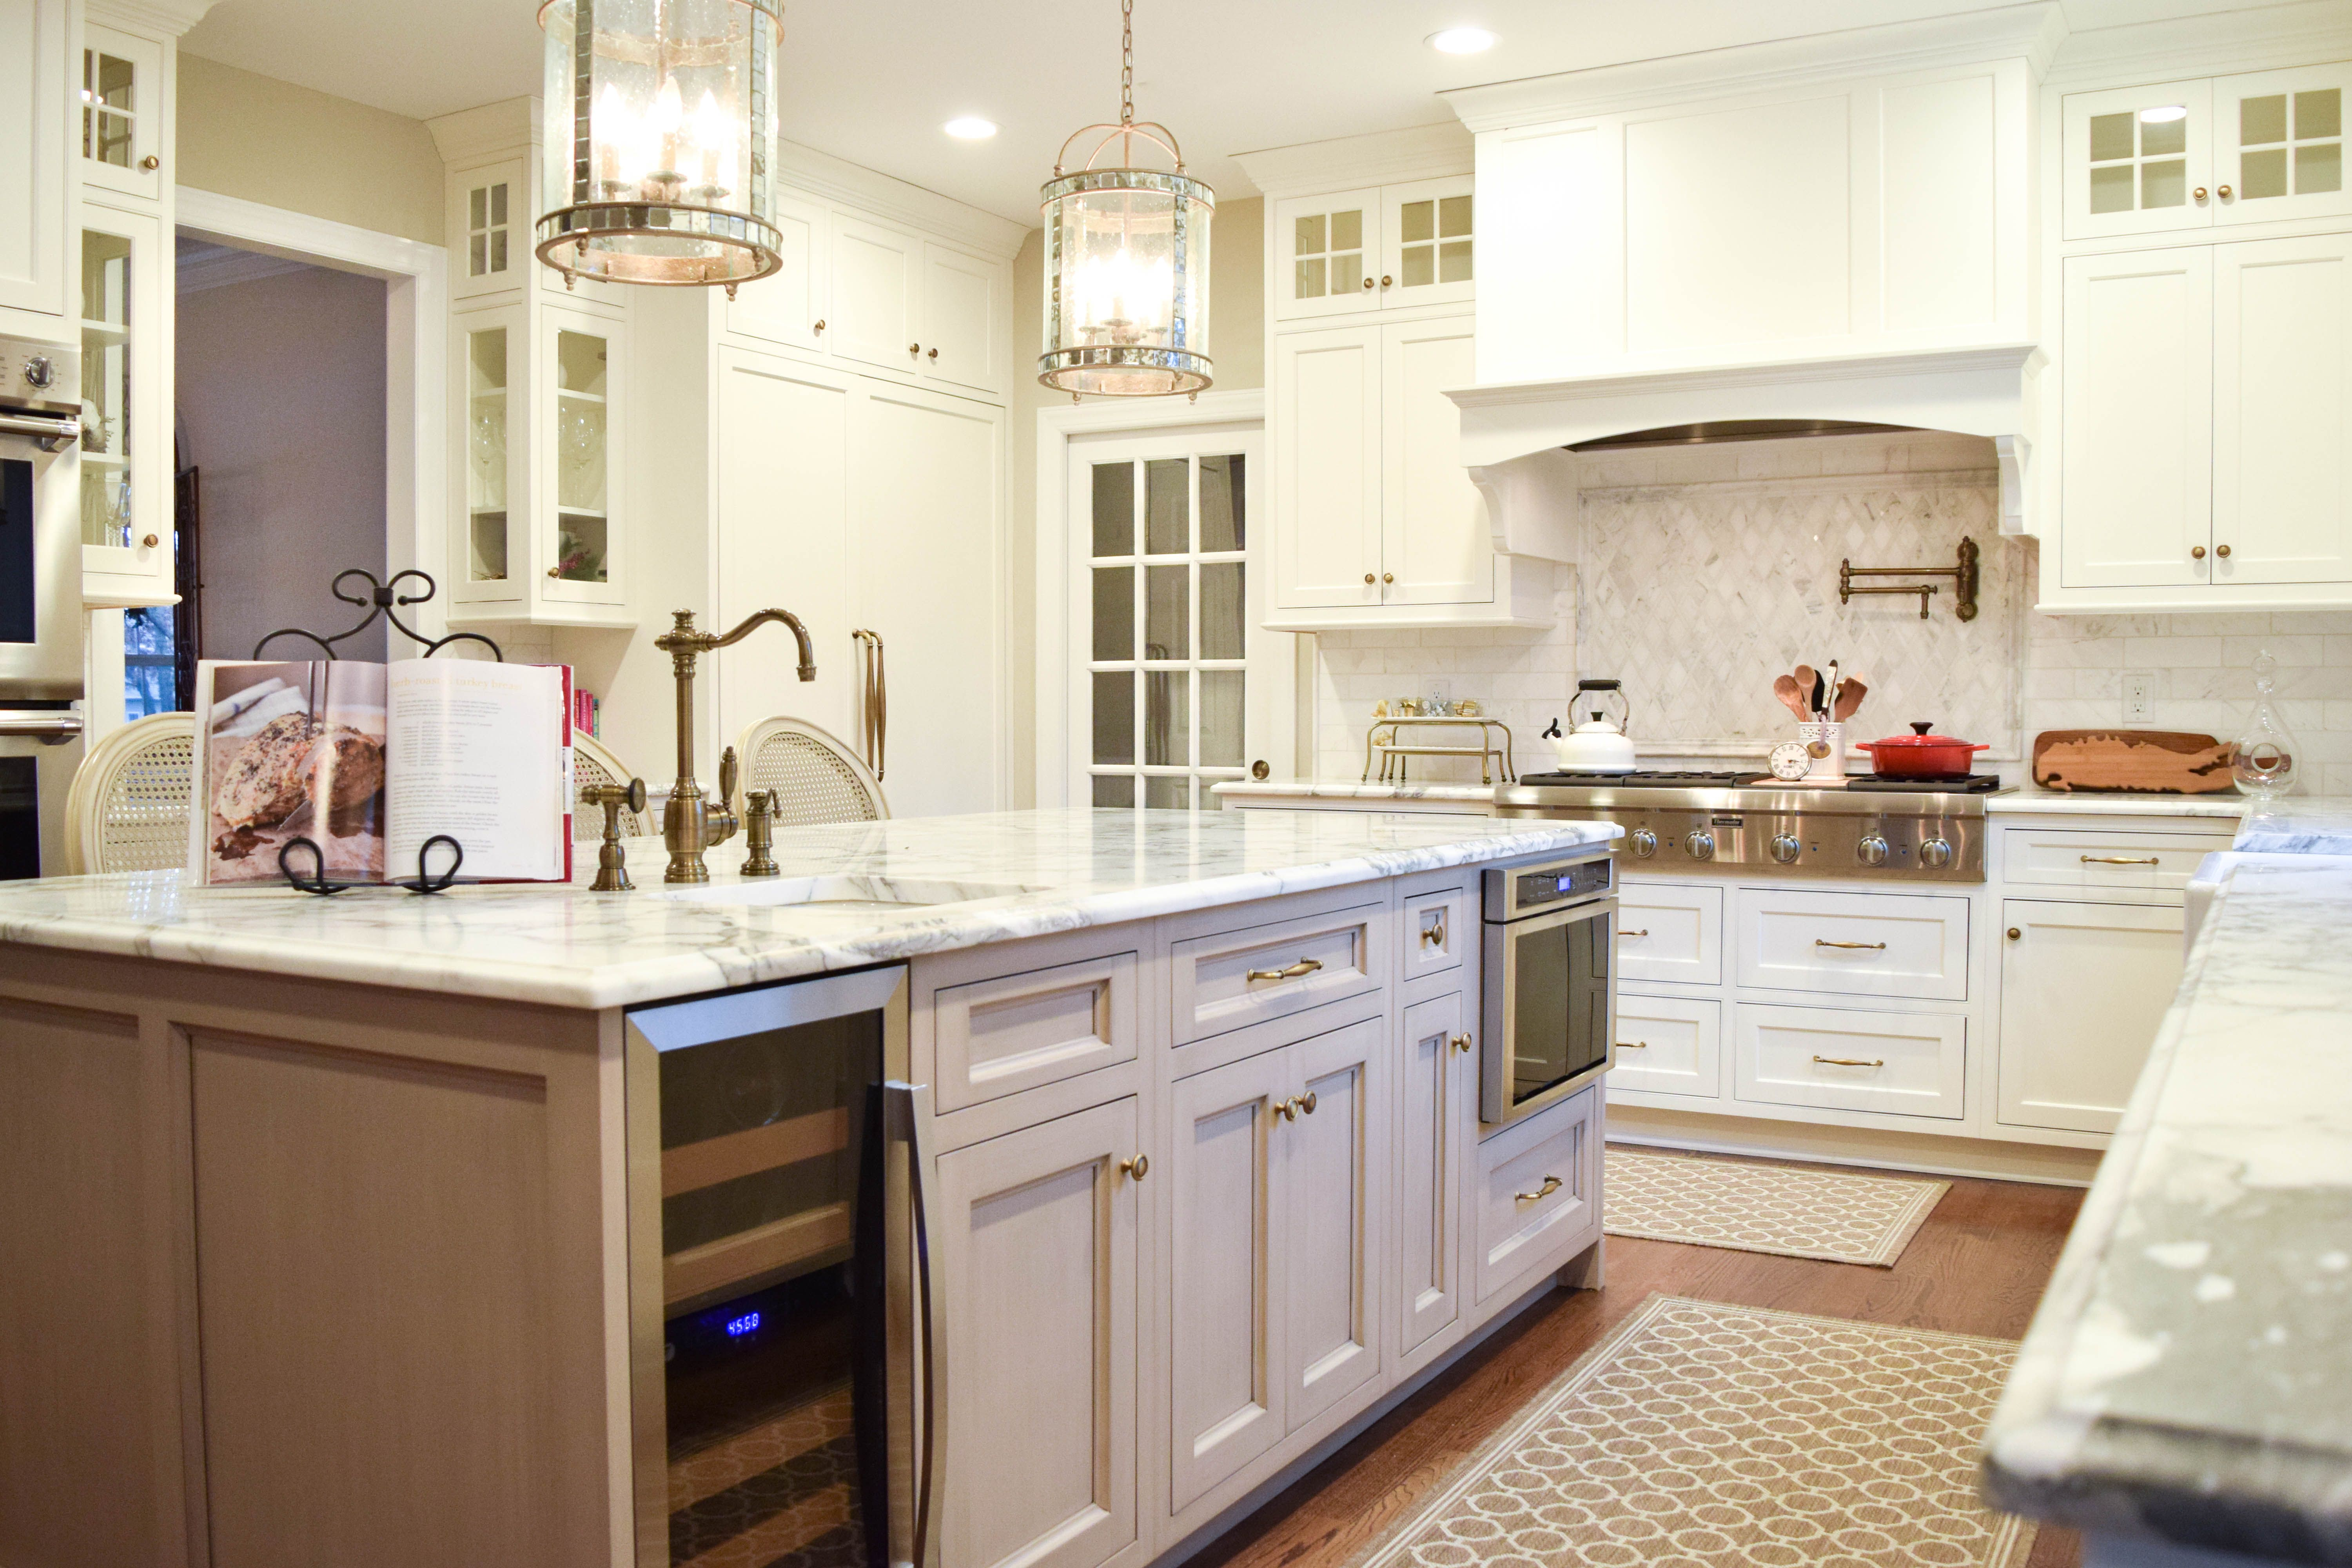 Pin by Coastal Cabinet Works on Our Work | Cabinetry ...